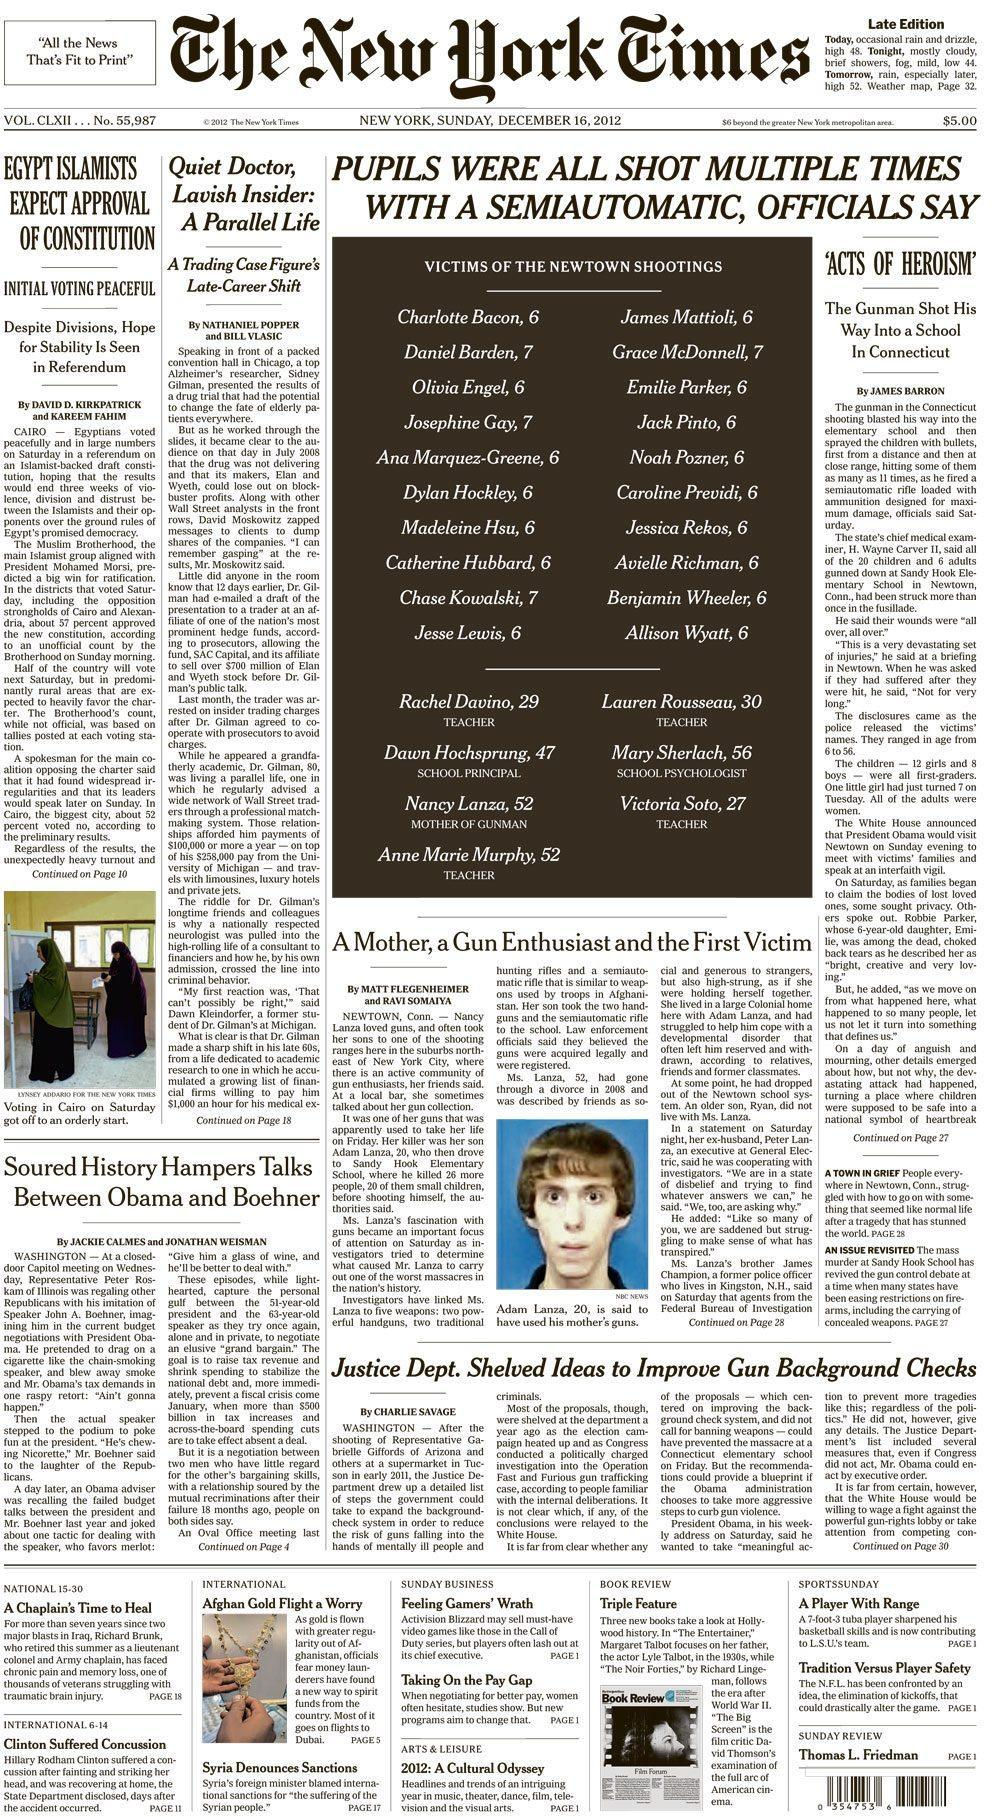 shortformblog:  Sunday's New York Times front page does something the paper of record has rarely, if ever, done before: It leads with a black box rather than an image, with zero photos taking up the top half of the page. It also downplays the suspect significantly. (ht @thomaskaplan)